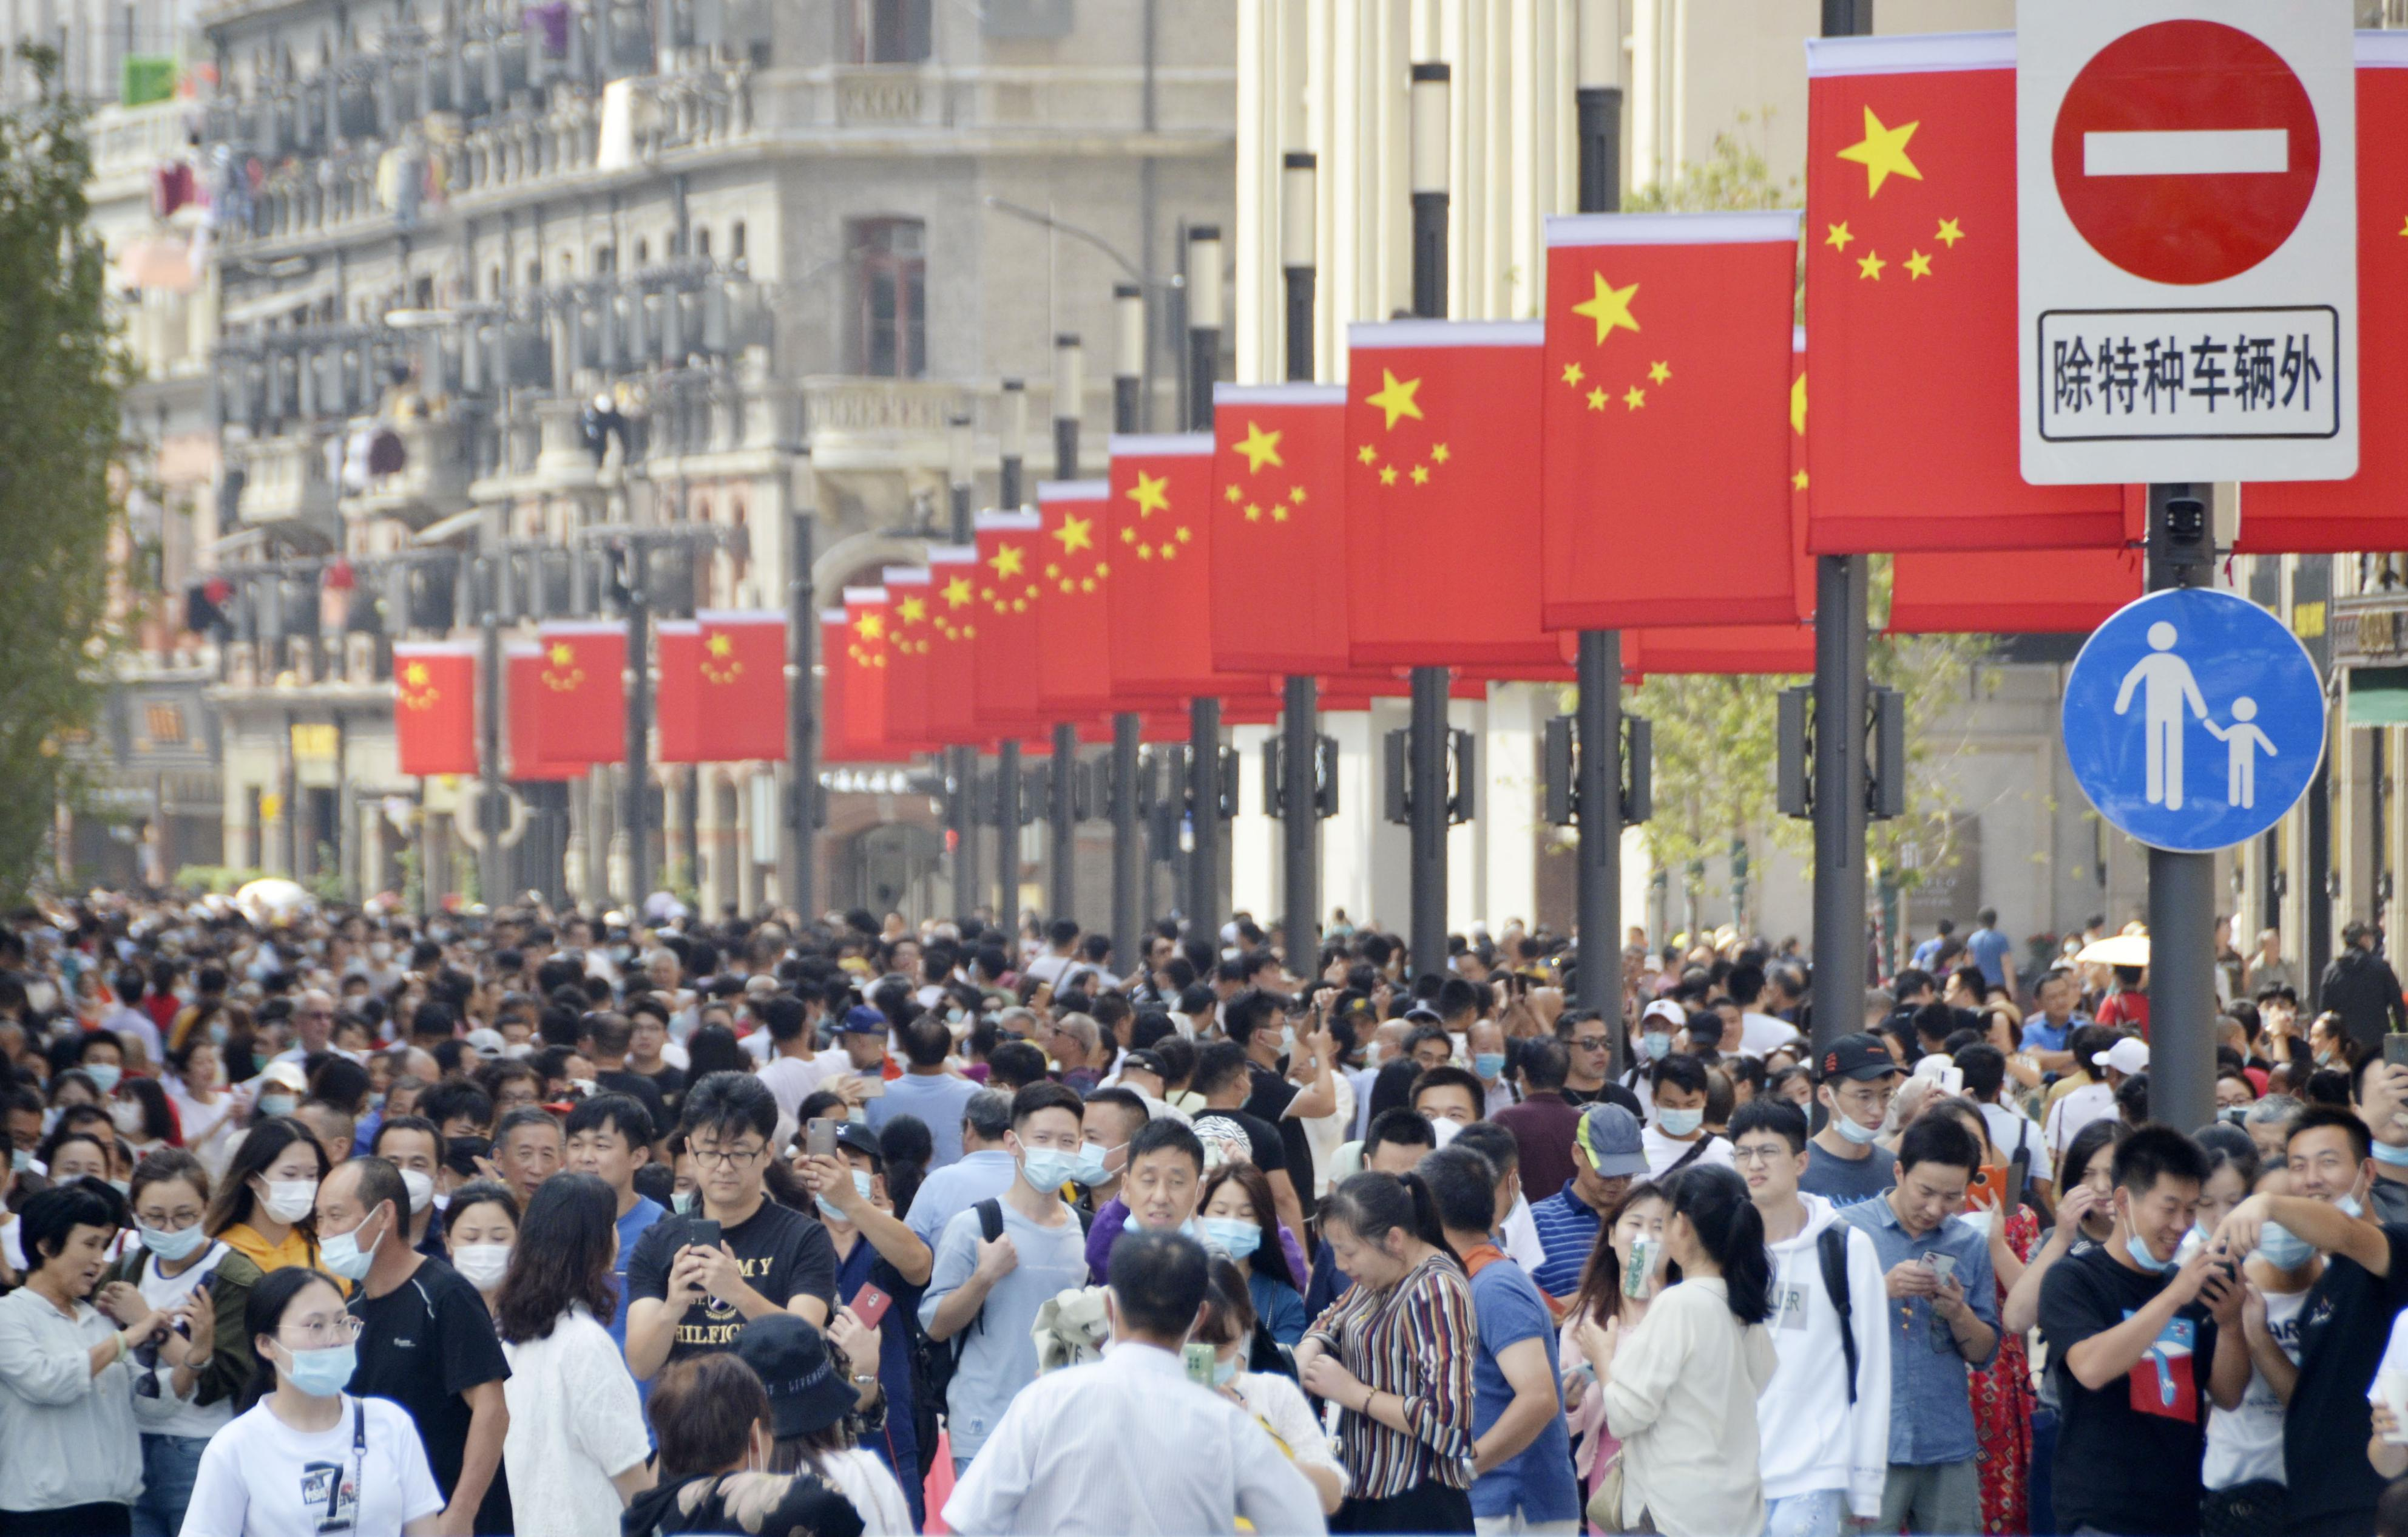 A sightseeing spot in Shanghai is crowded with tourists on China's National Day.